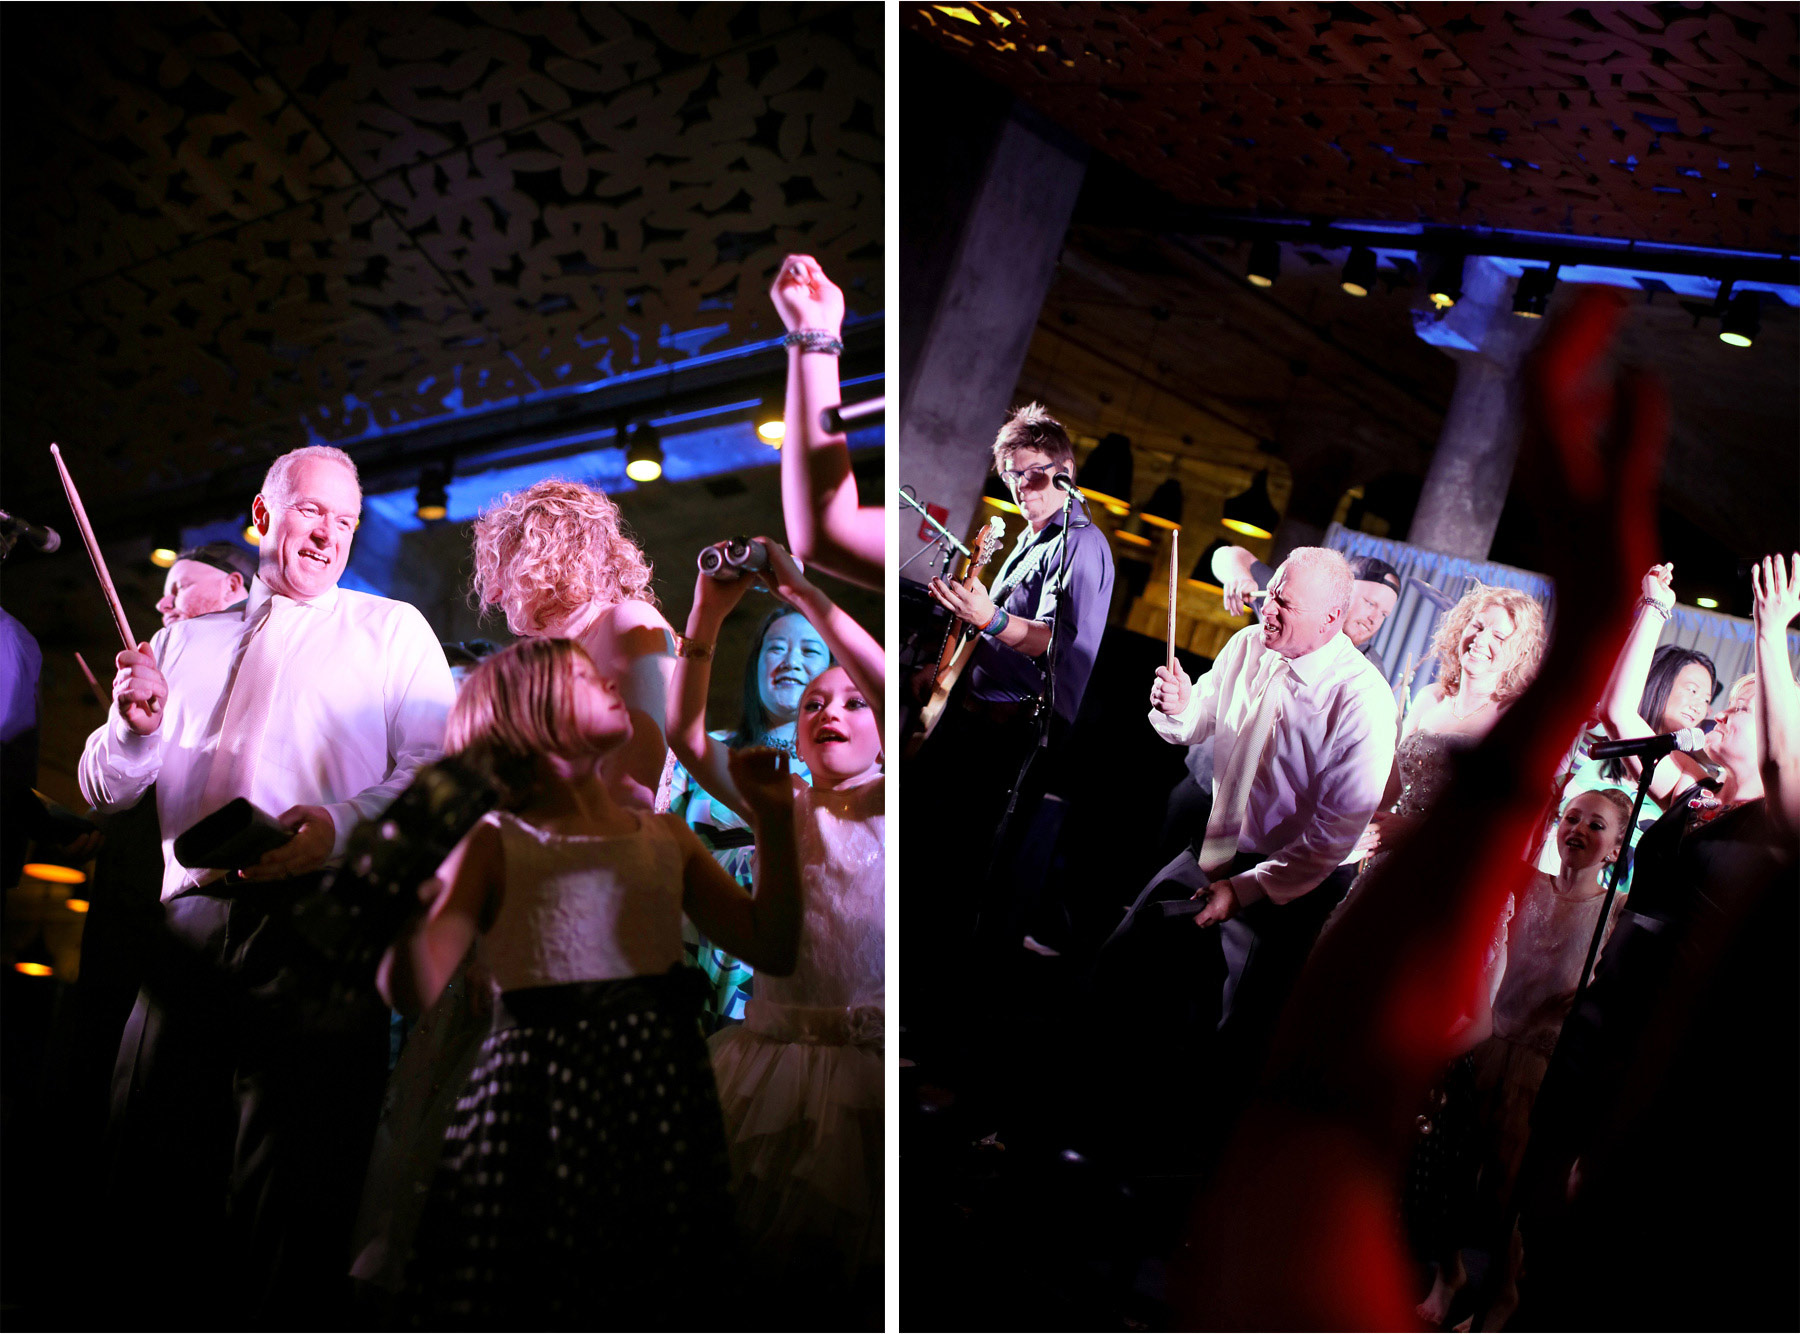 15-Minneapolis-Minnesota-Wedding-Photographer-by-Andrew-Vick-Photography-Spring-Mill-City-Museum-Downtown-Bride-Groom-Dance-Cowbell-Band-Musicians-Dannette-and-Darren.jpg